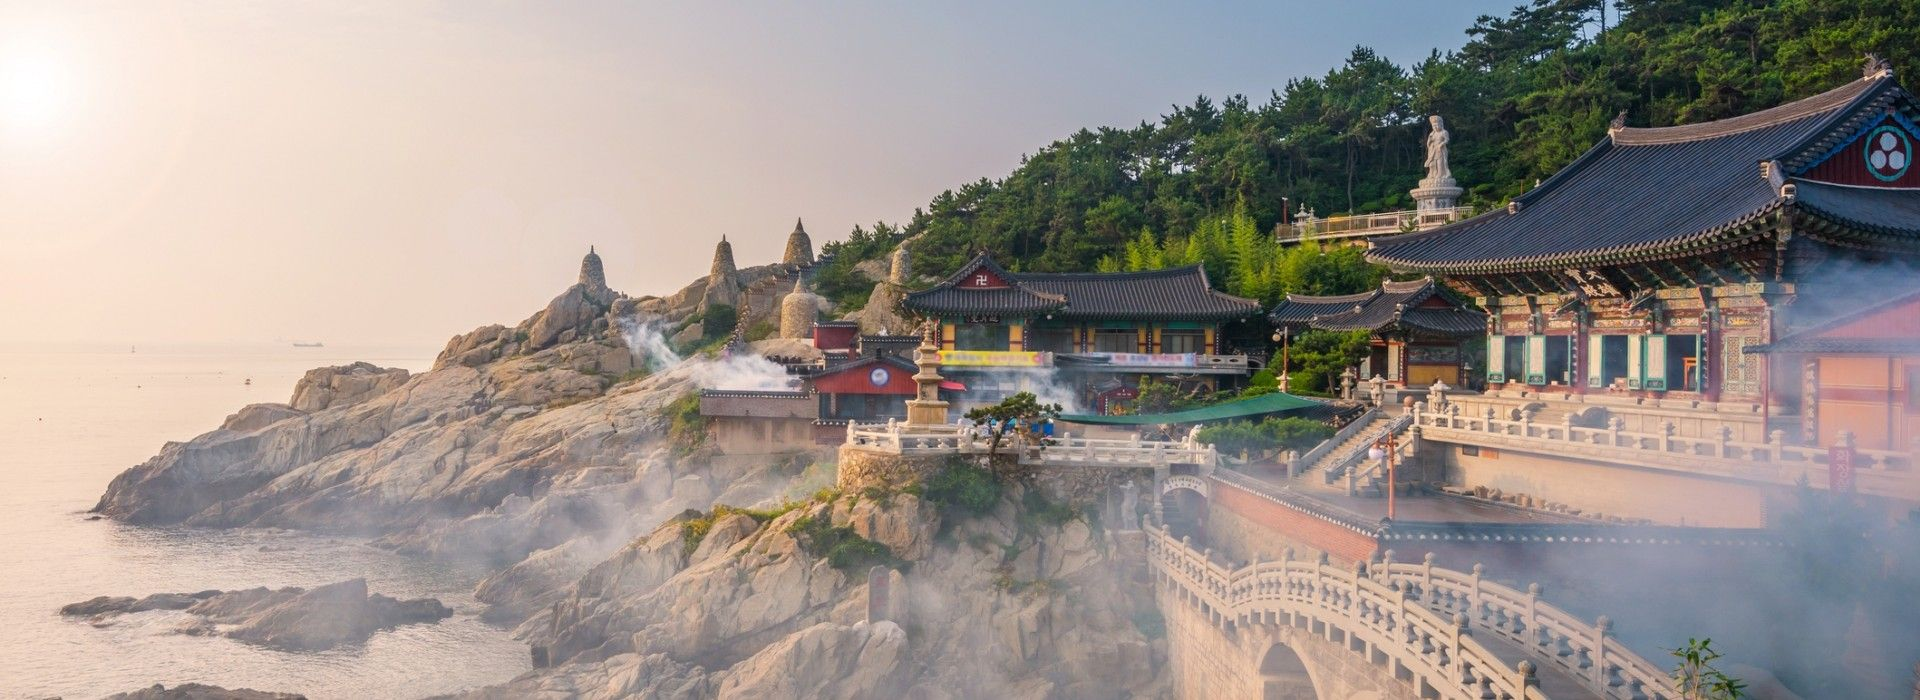 Cultural, religious and historic sites Tours in DMZ